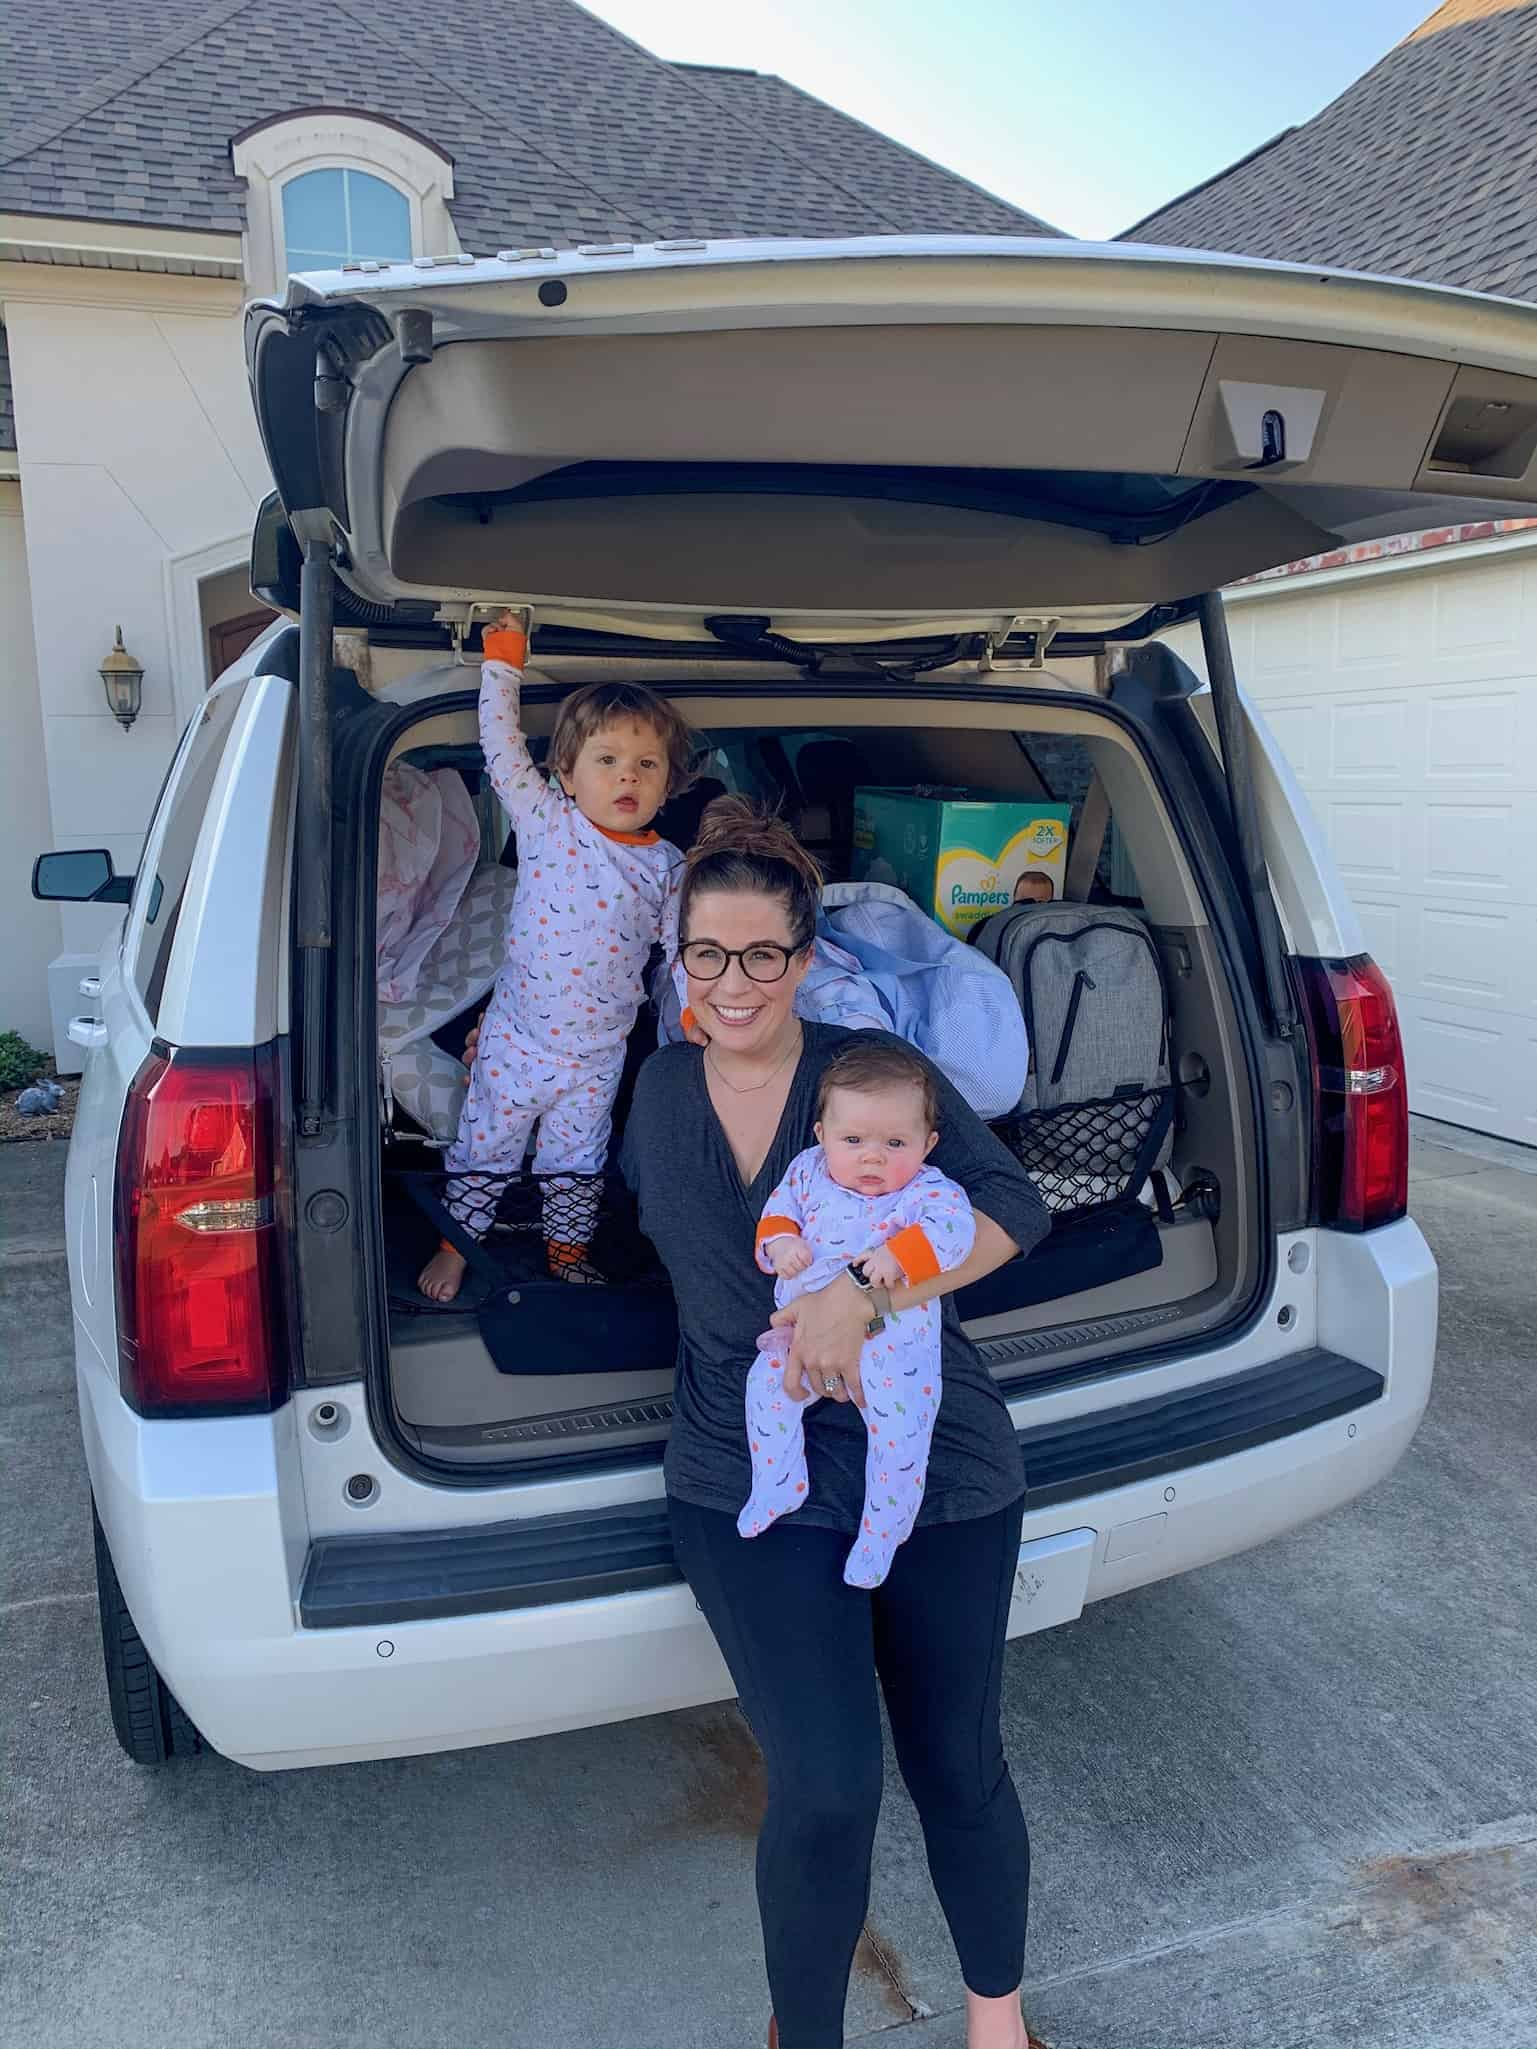 Road Trip with Tots